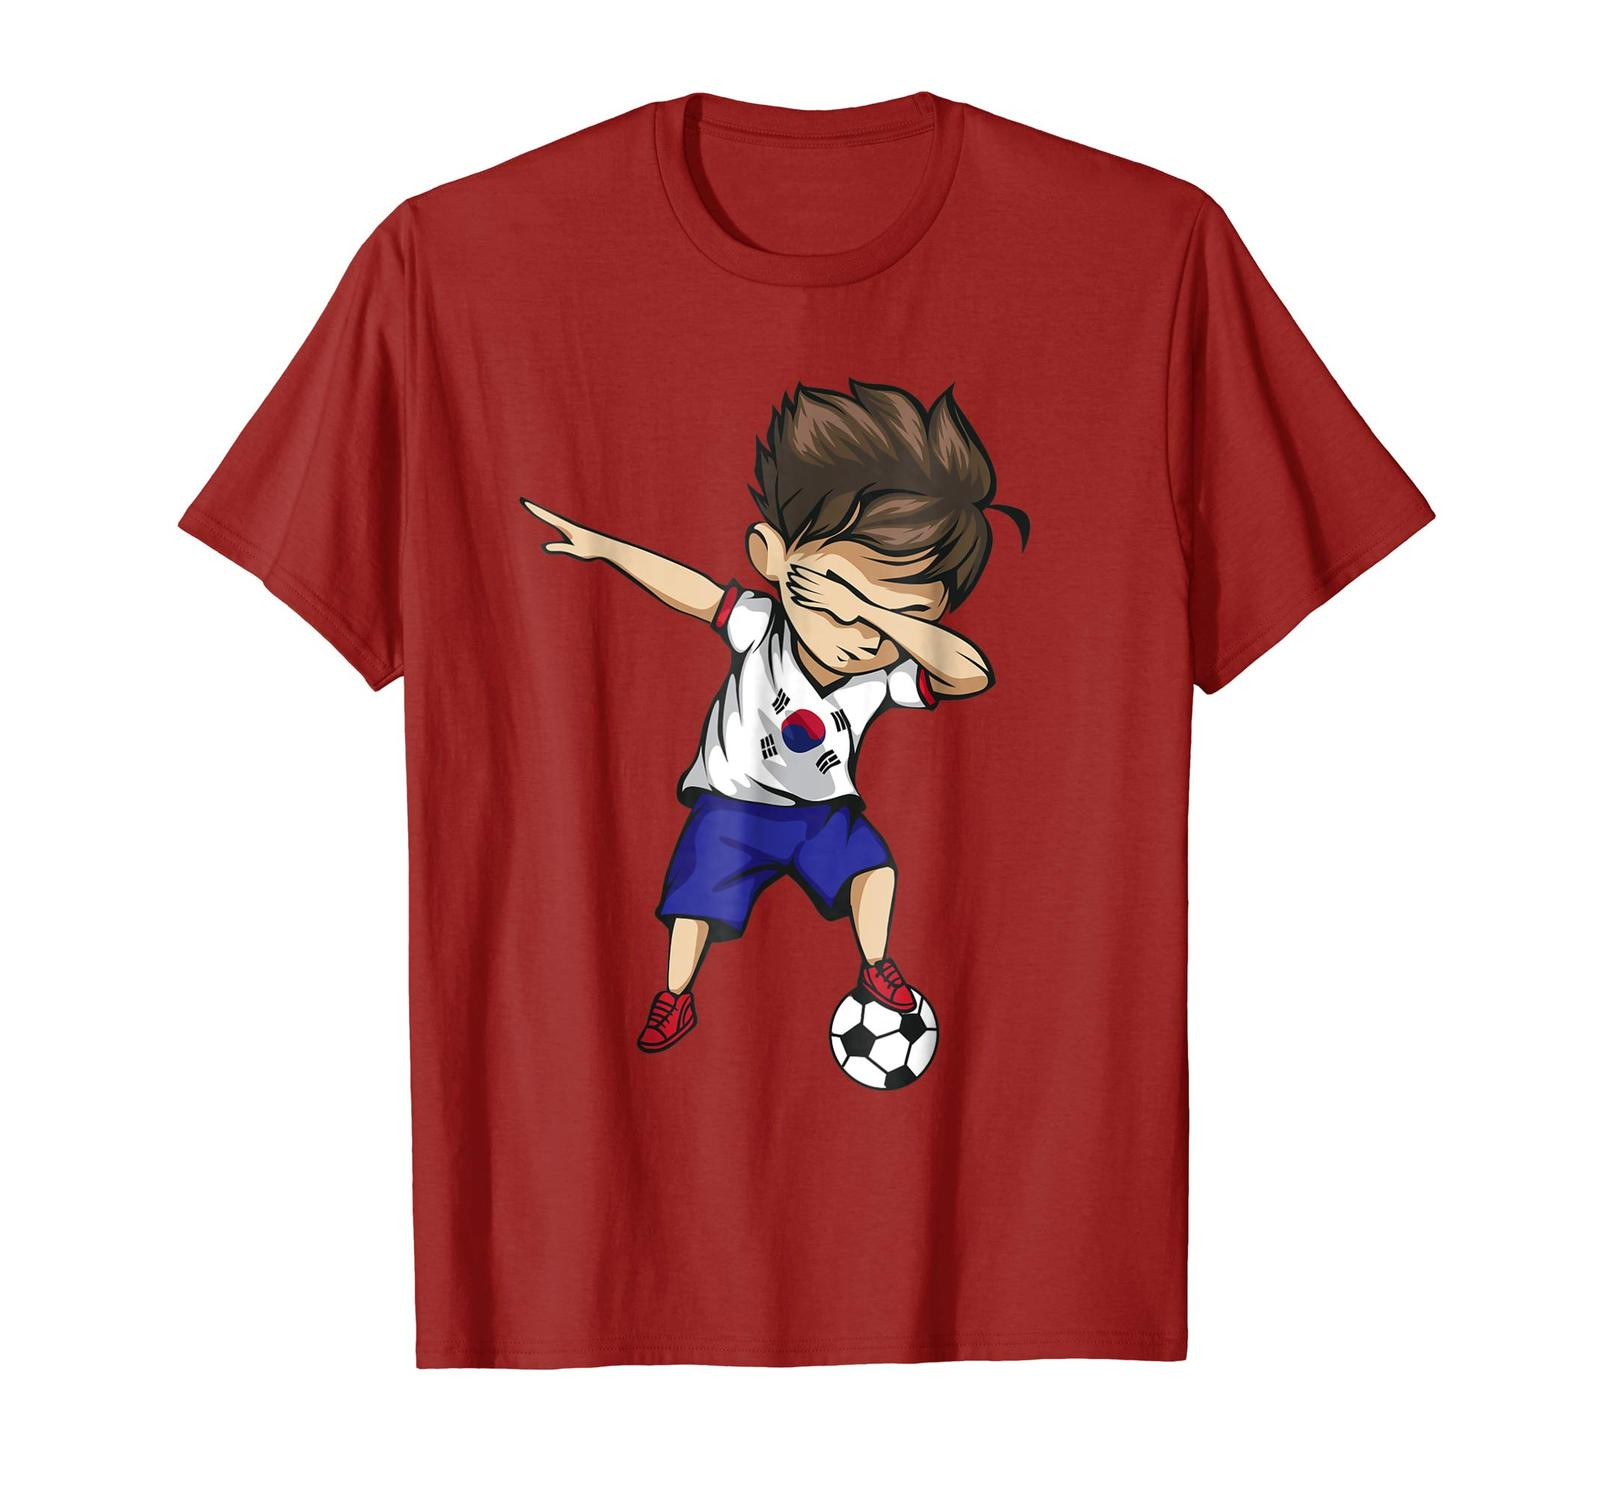 Primary image for Dad Shirts - Dabbing Soccer Boy South Korea Jersey Shirt Korean Football Men